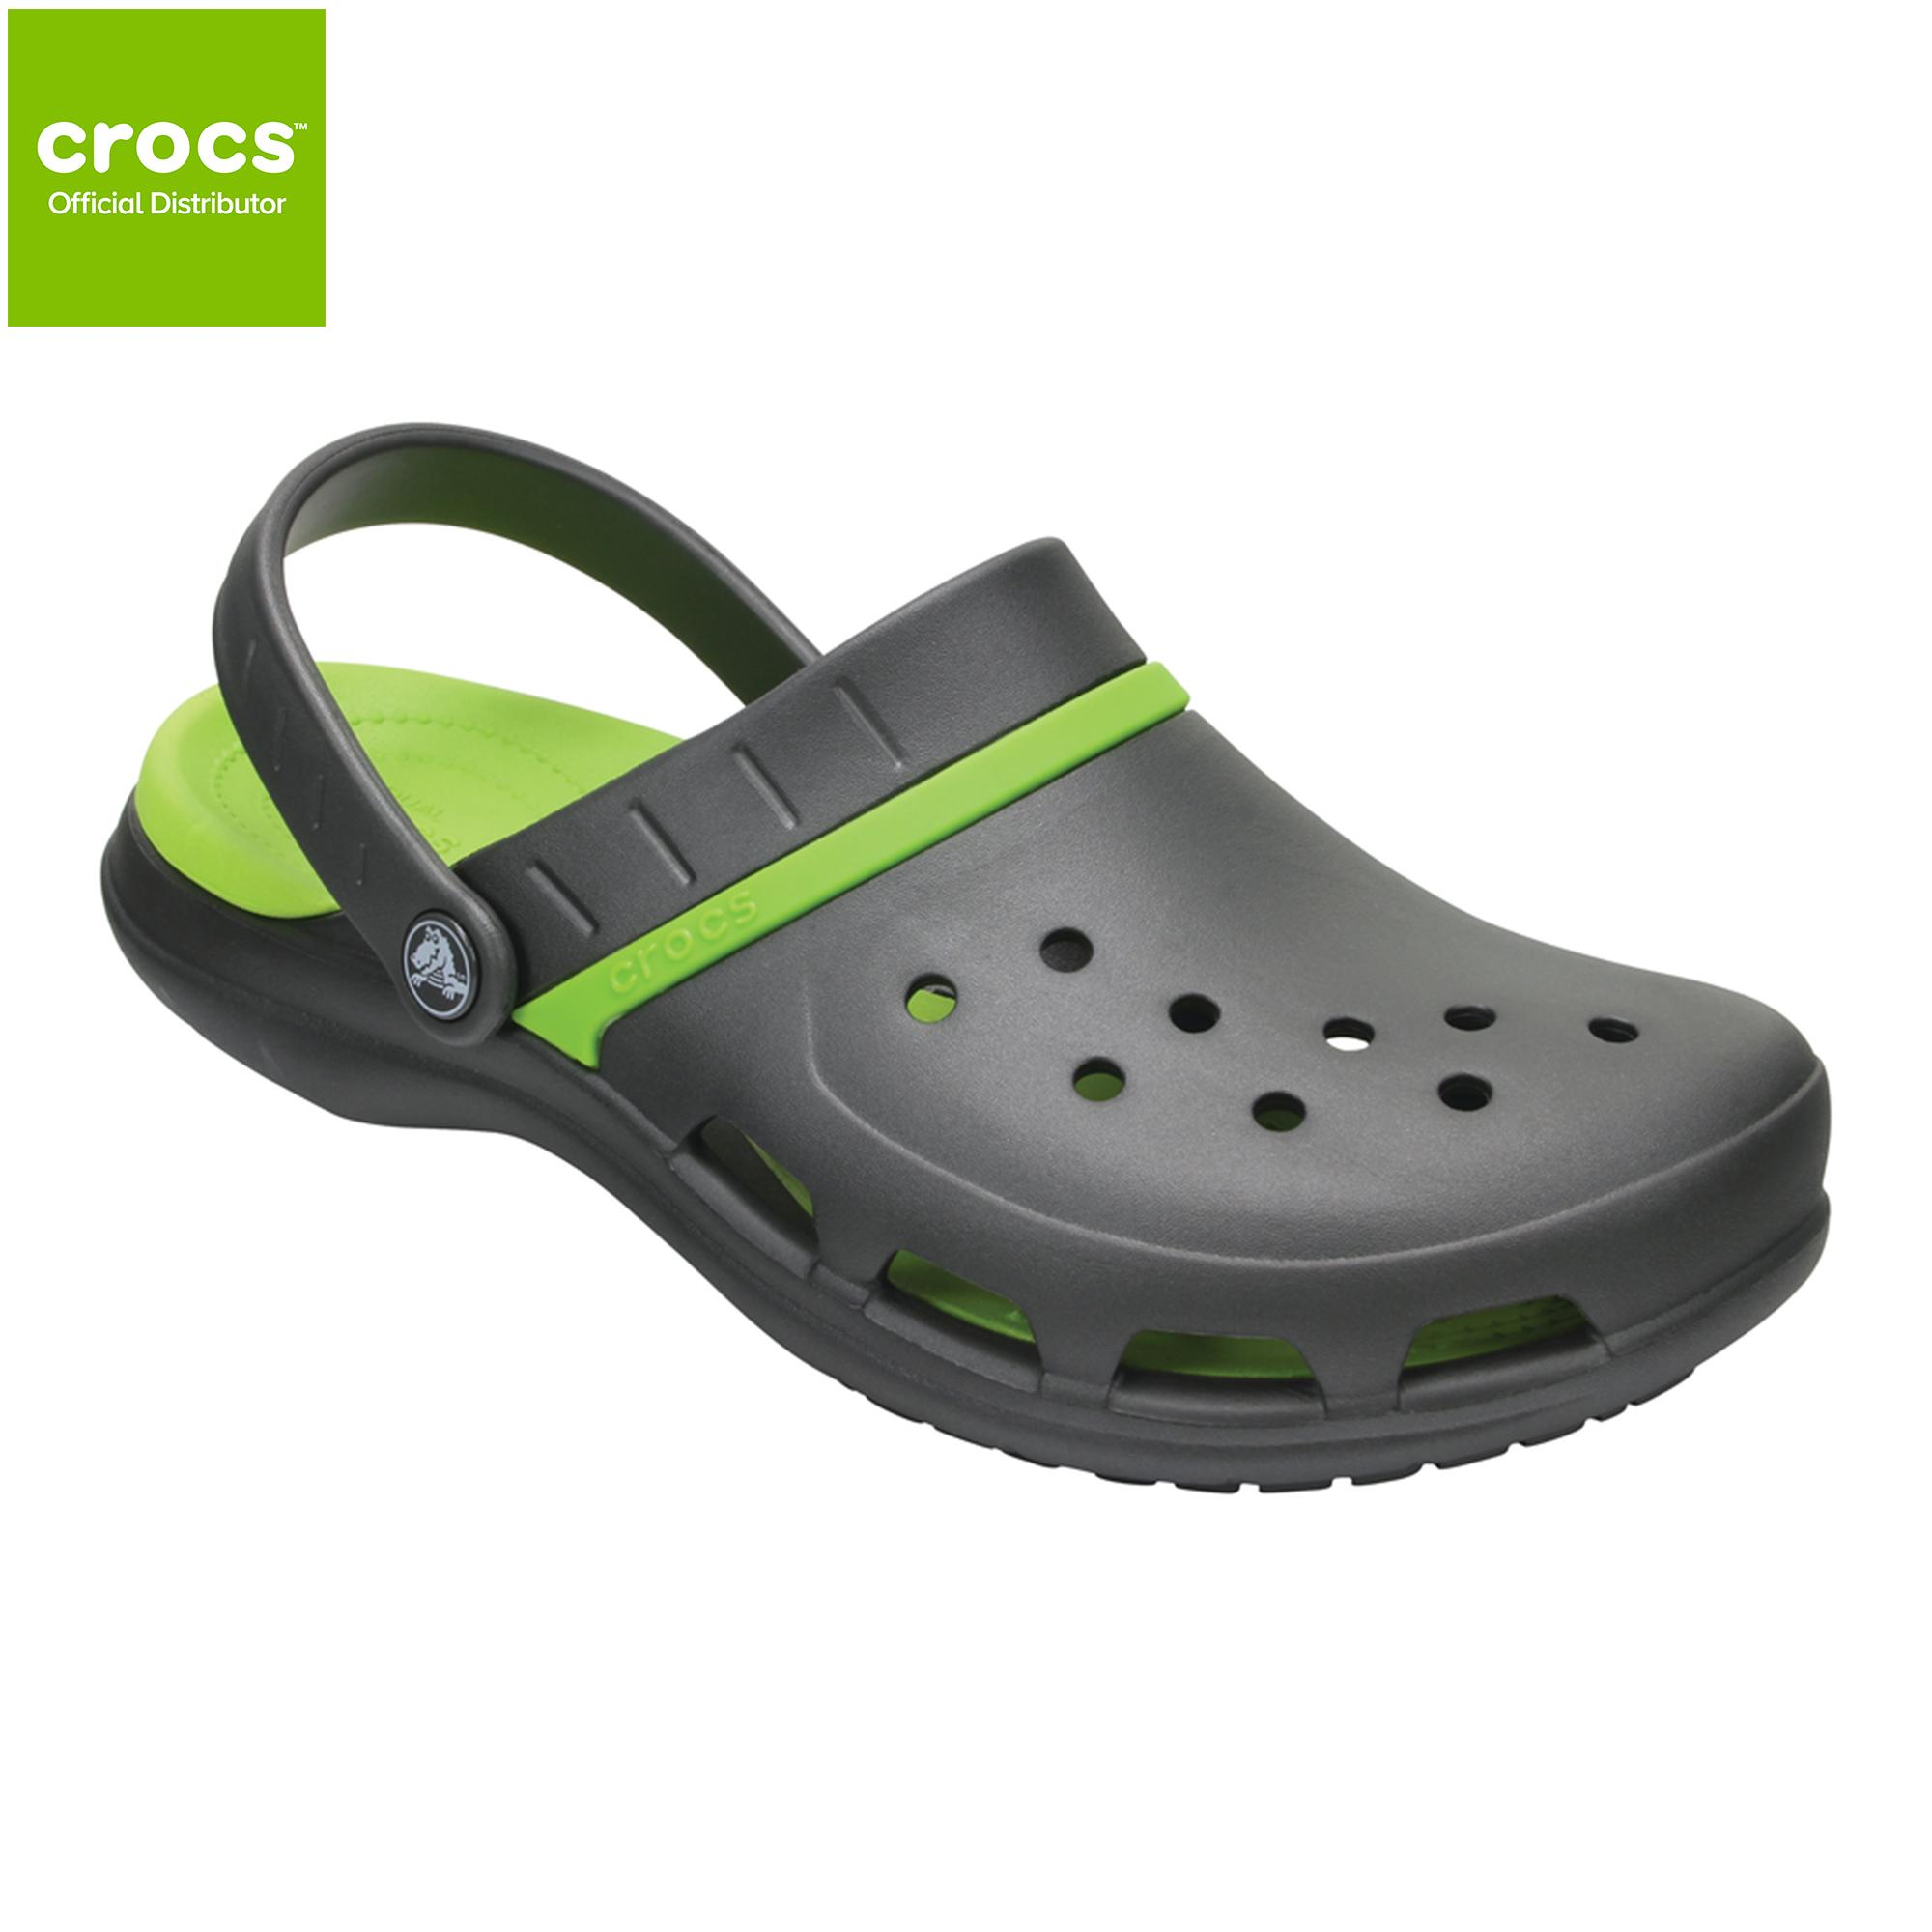 dbd16c88f55b Crocs Philippines  Crocs price list - Crocs Flats